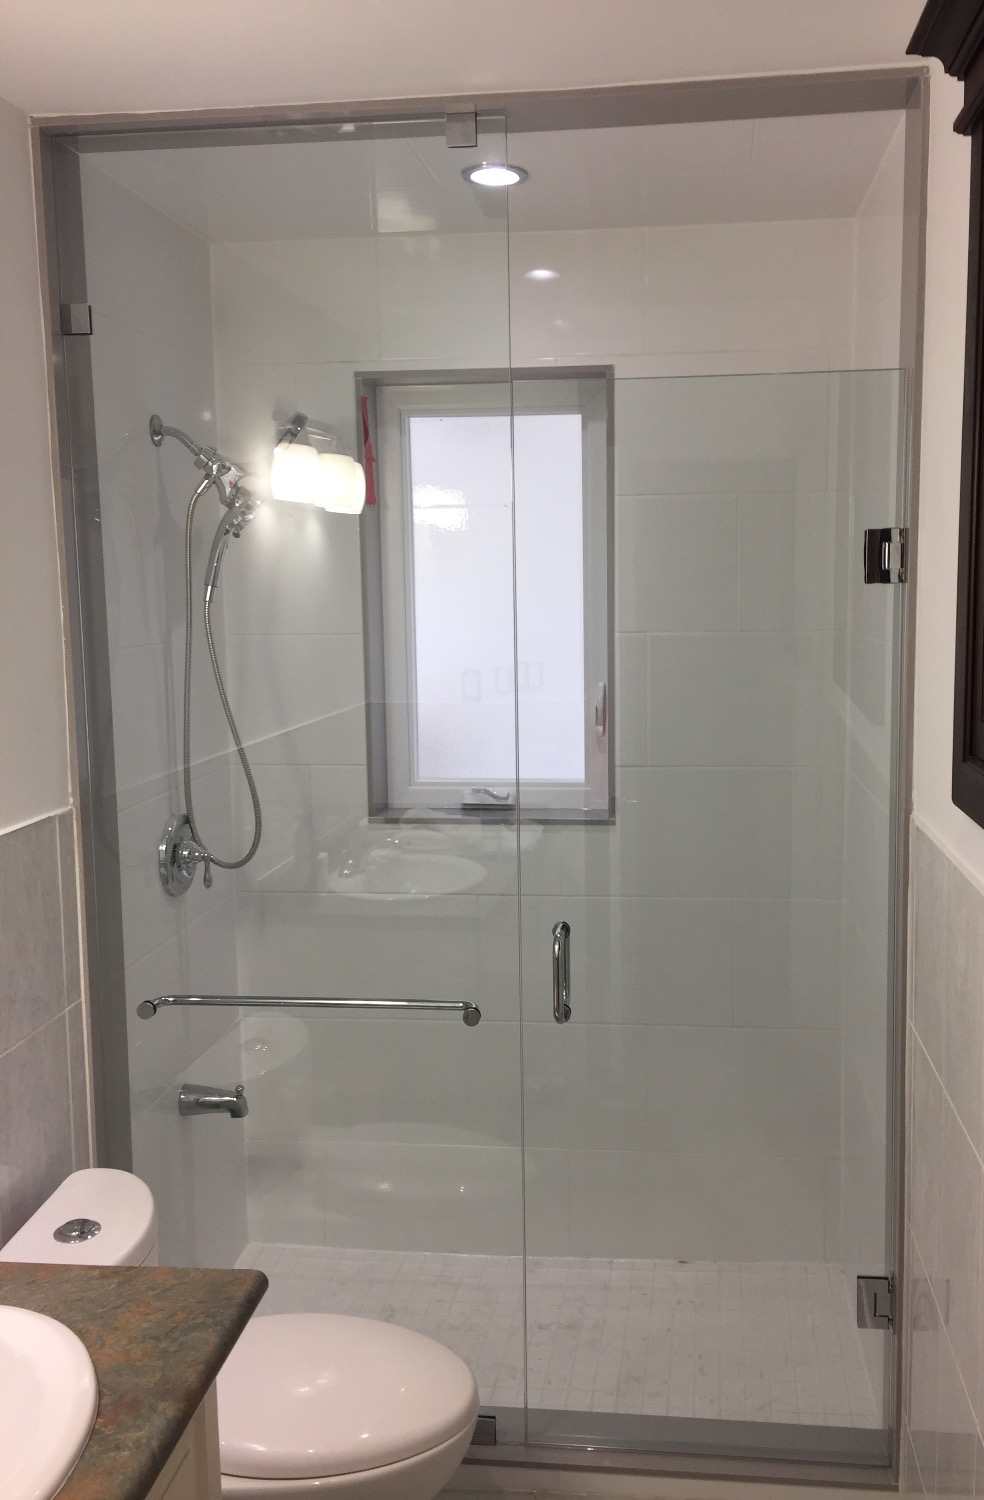 TYPICAL GLASS SHOWER ENCLOSURE